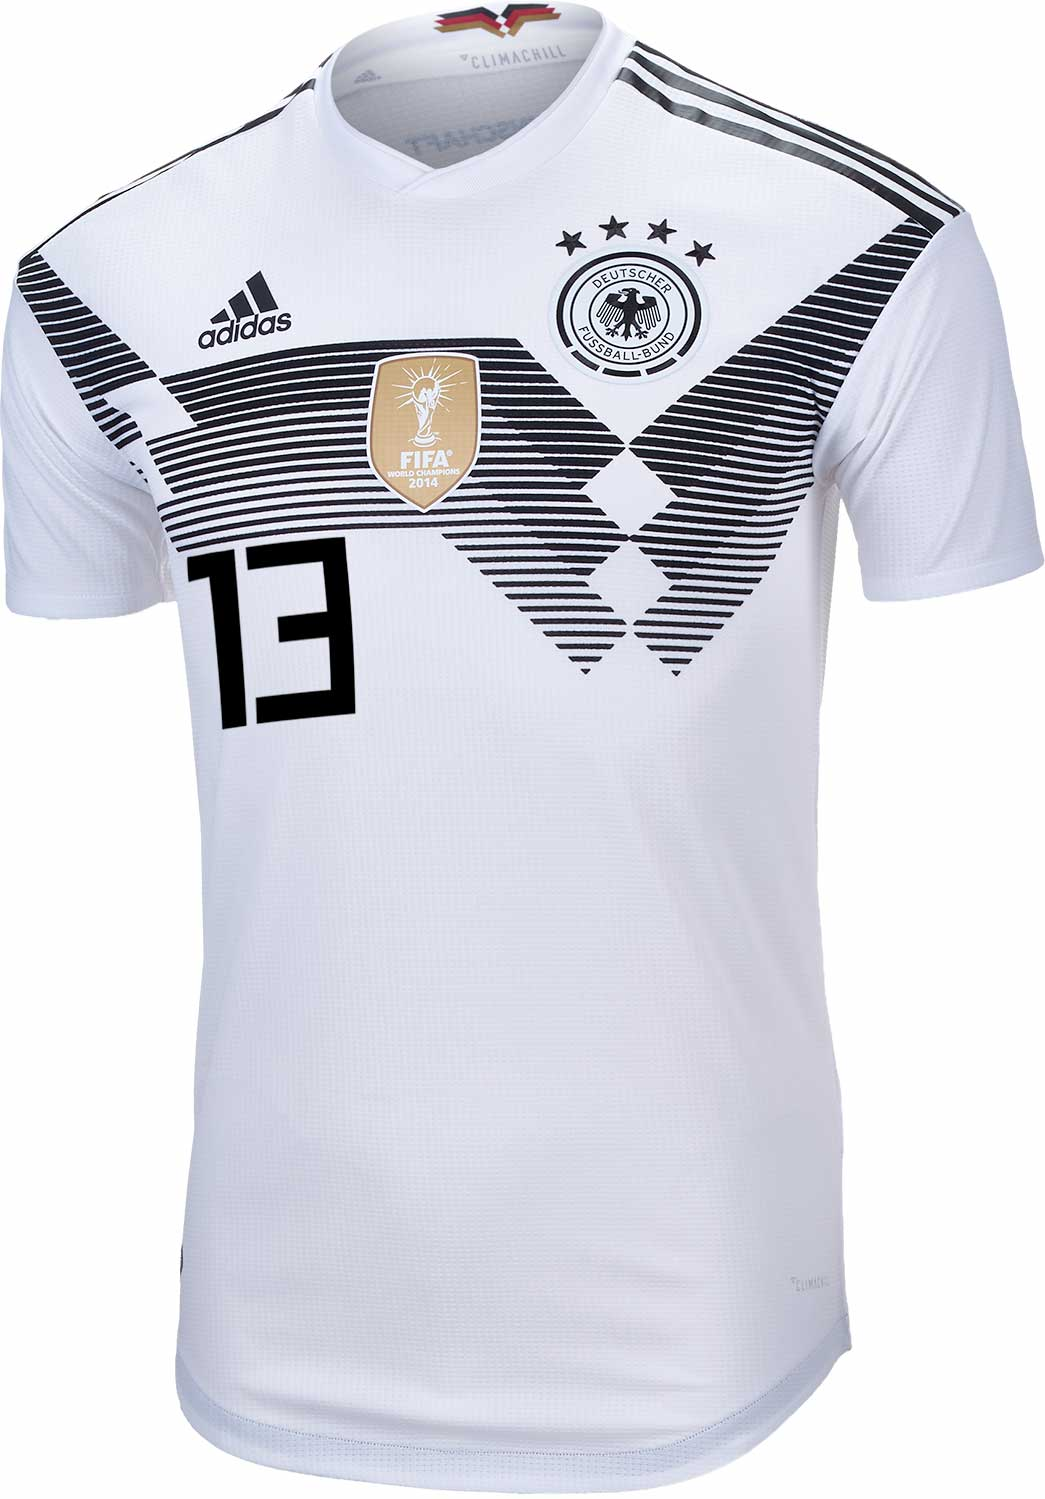 889242a5ec7 adidas Thomas Muller Germany Authentic Home Jersey 2018-19 - SoccerPro